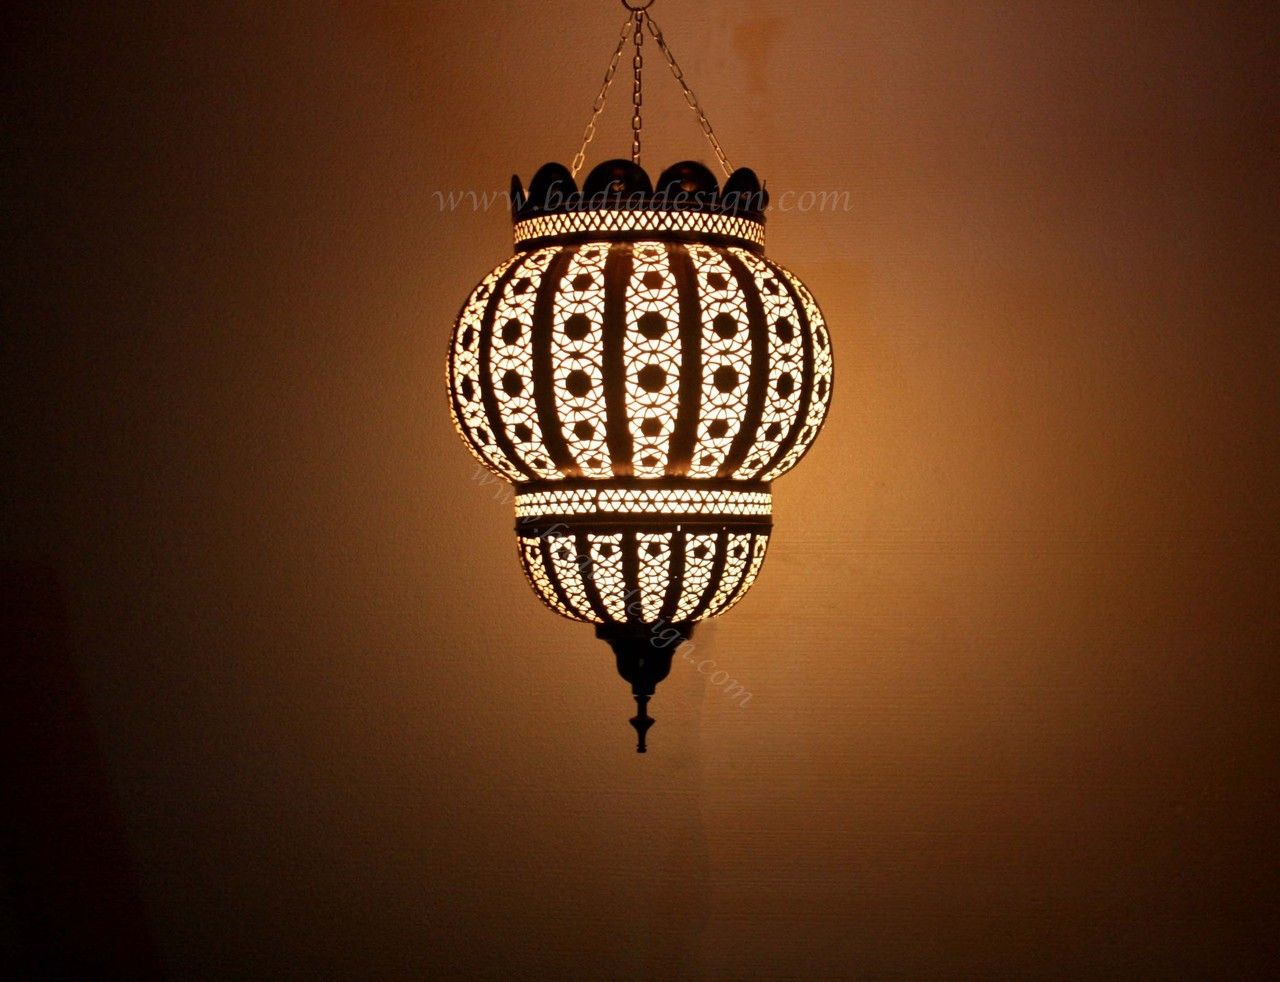 High Quality Badia Design Inc Store   Hanging Brass Lantern With White Film Material    LIG186, $845.00 Amazing Pictures